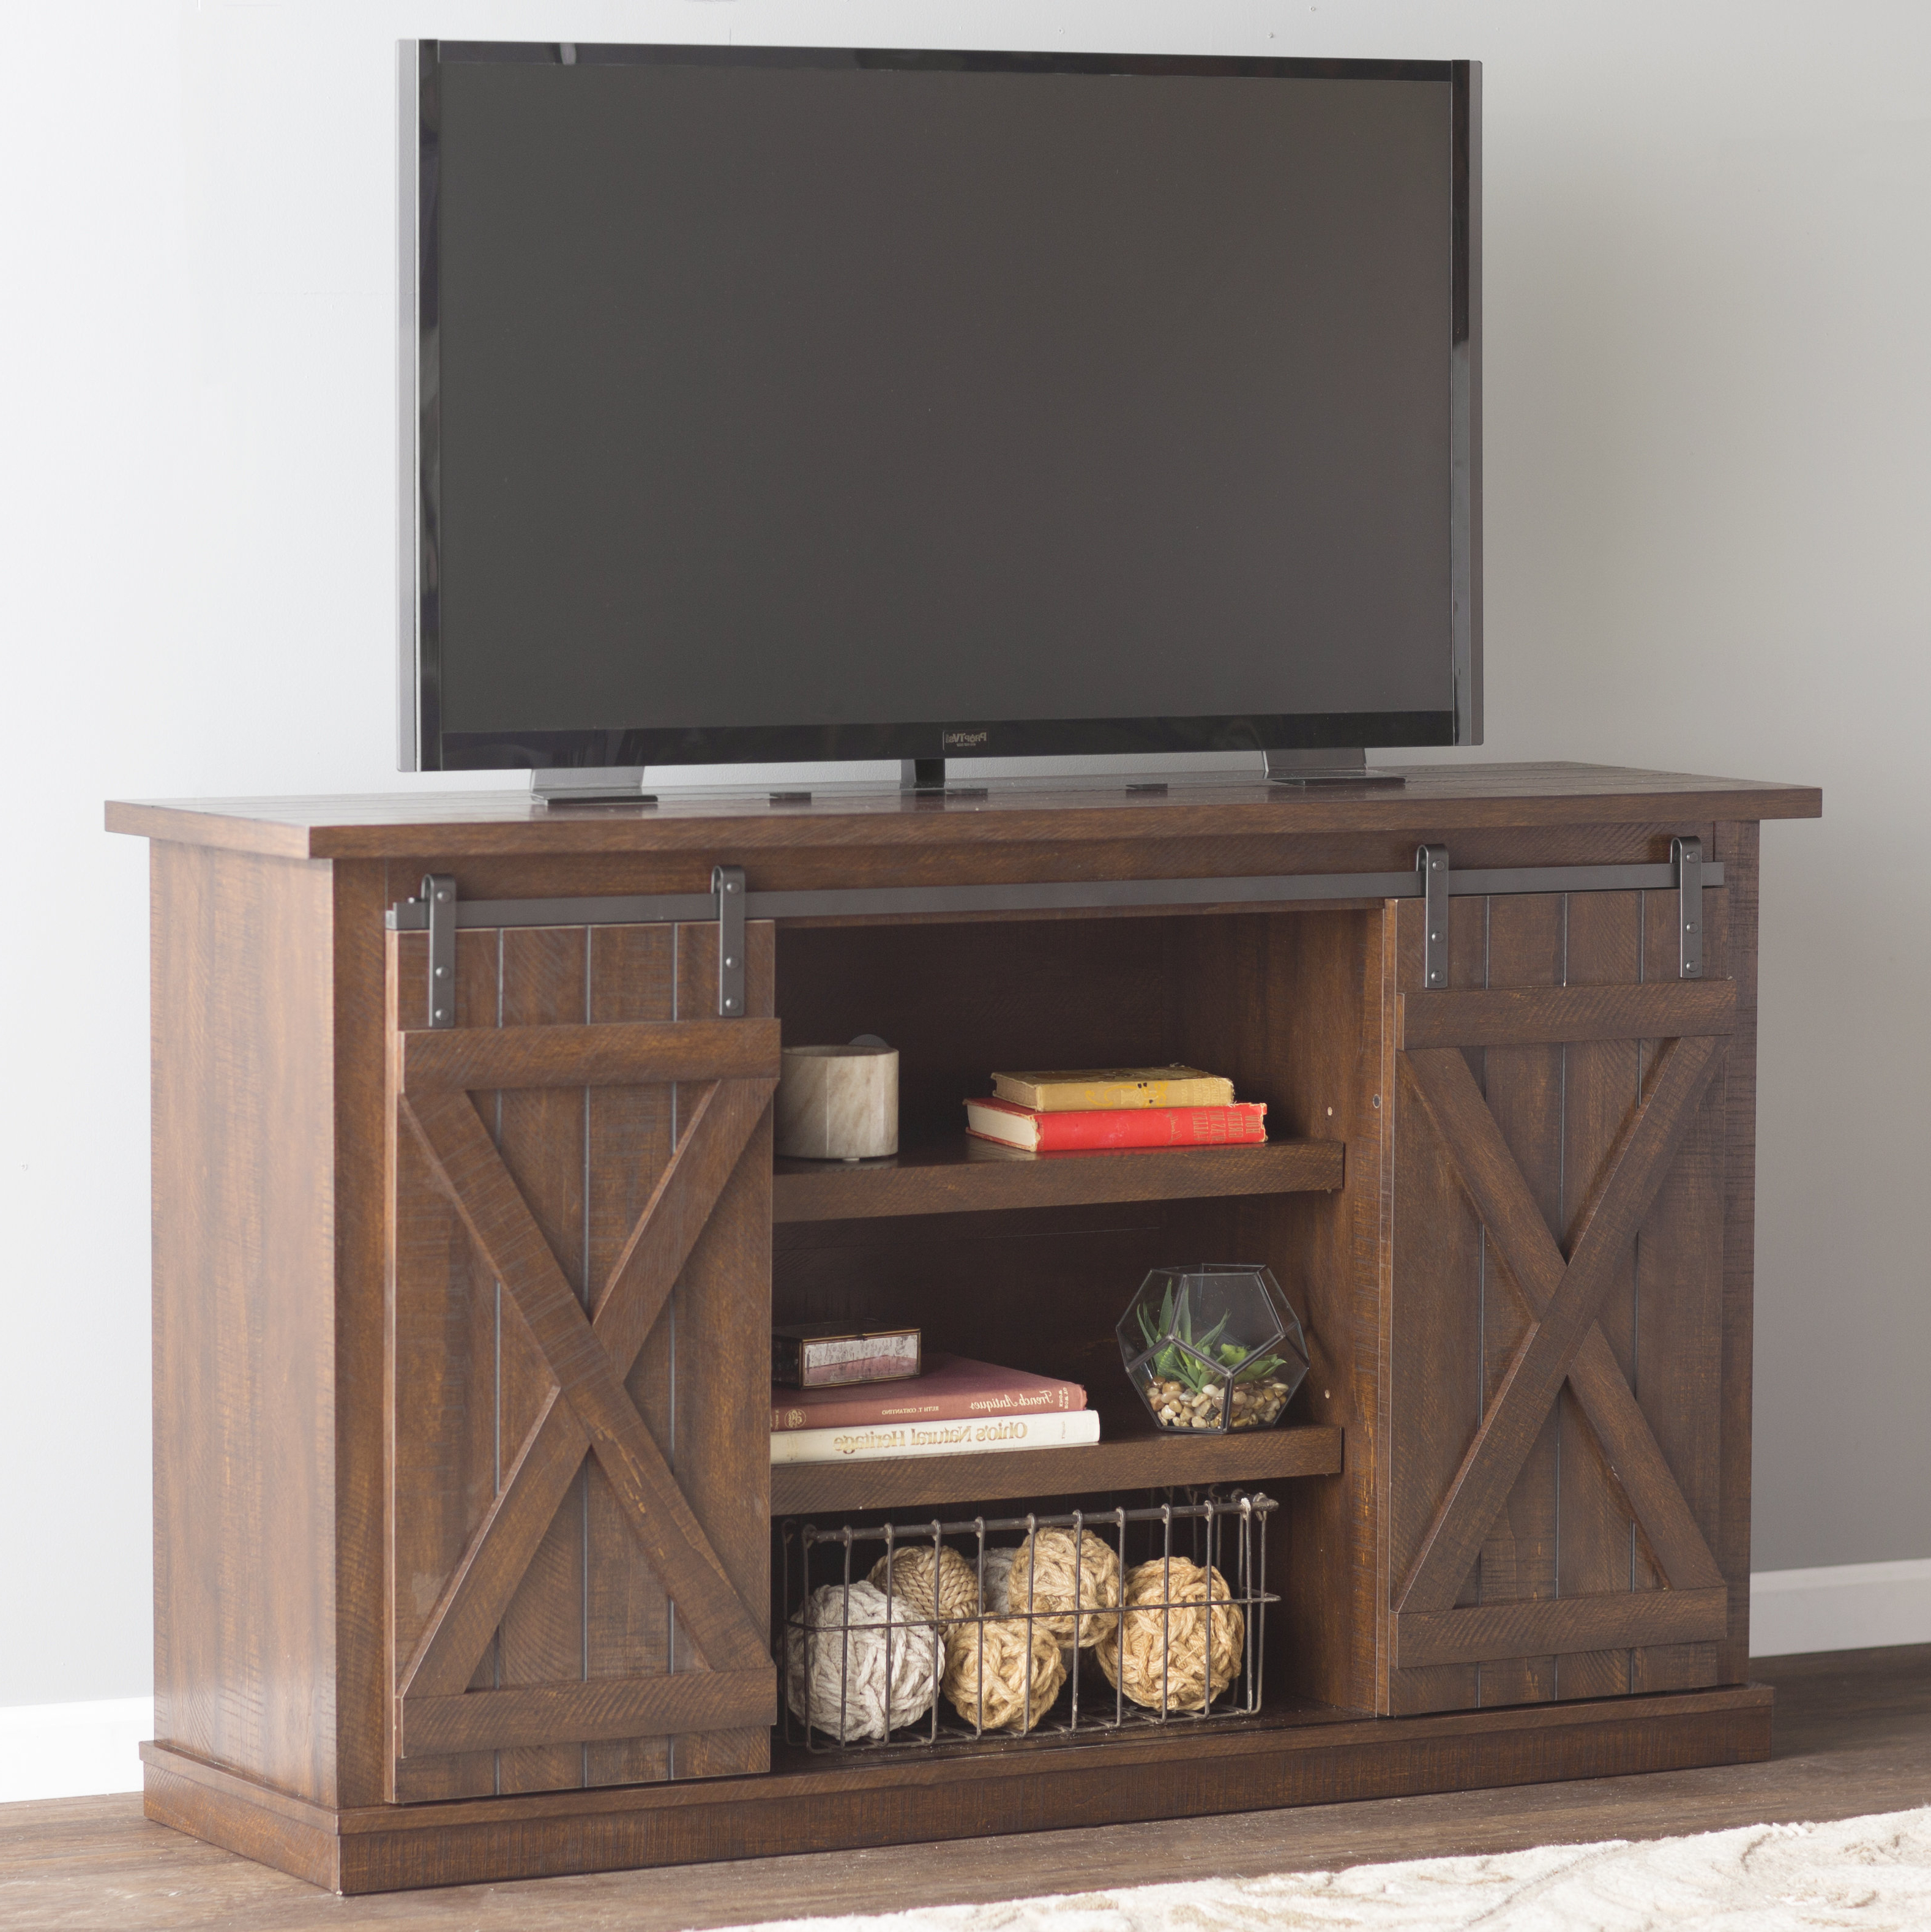 Wayfair Throughout Popular Sinclair Blue 64 Inch Tv Stands (View 18 of 20)